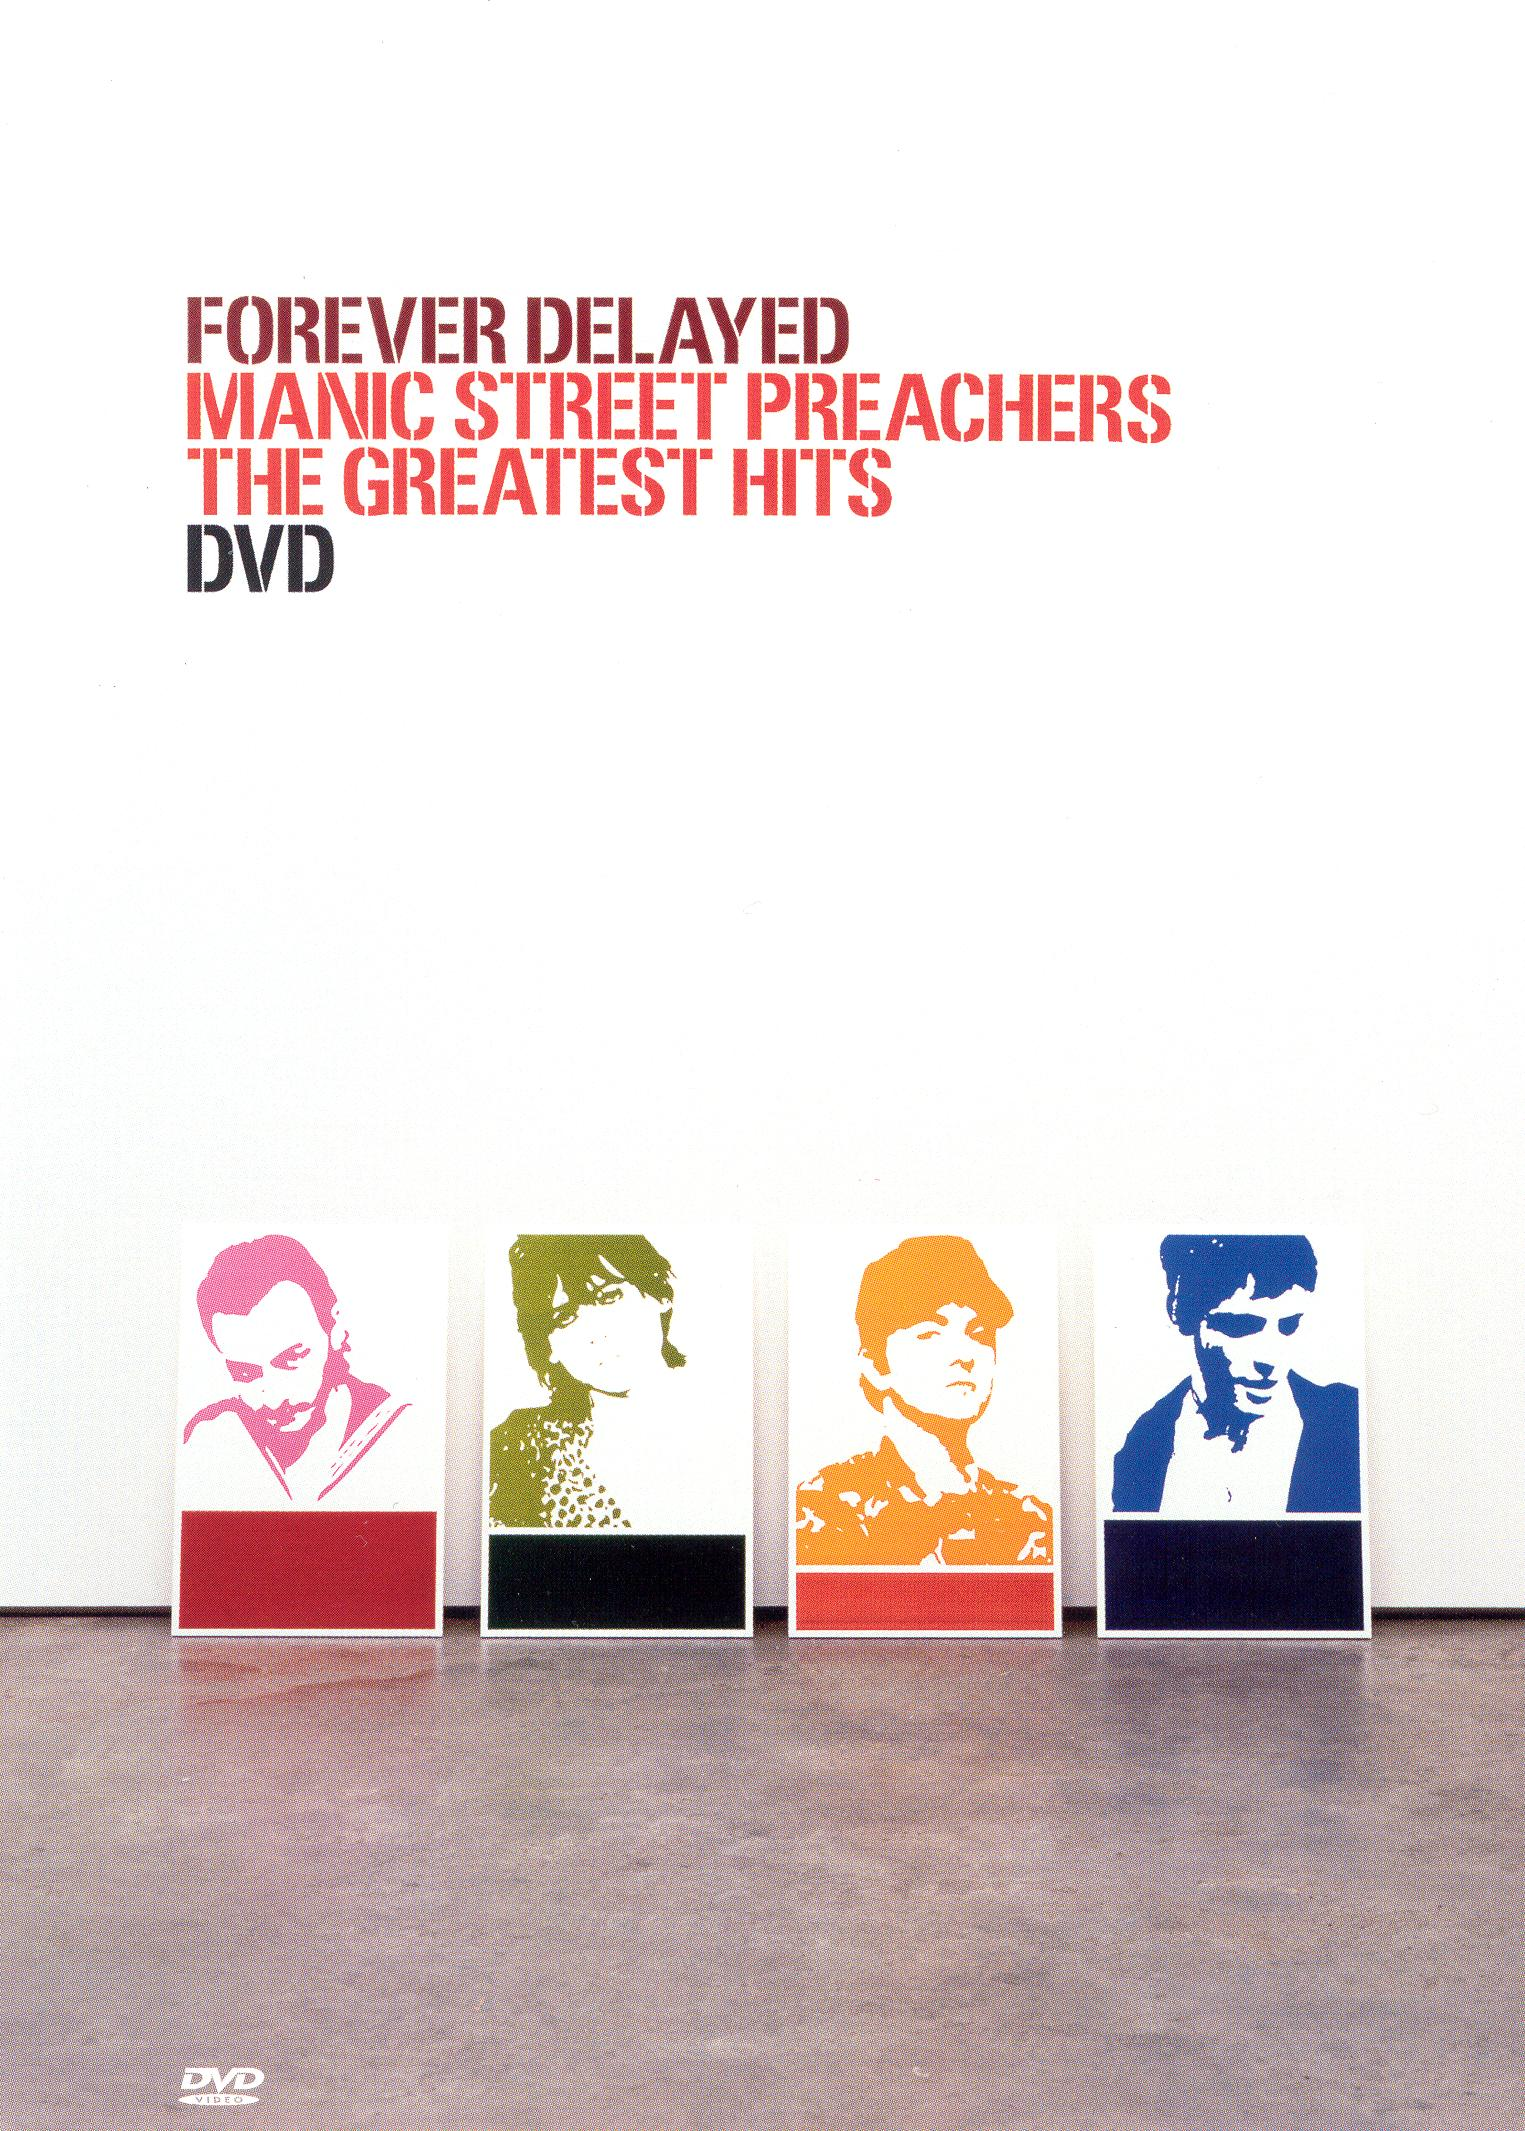 Manic Street Preachers: Forever Delayed - The Greatest Hits